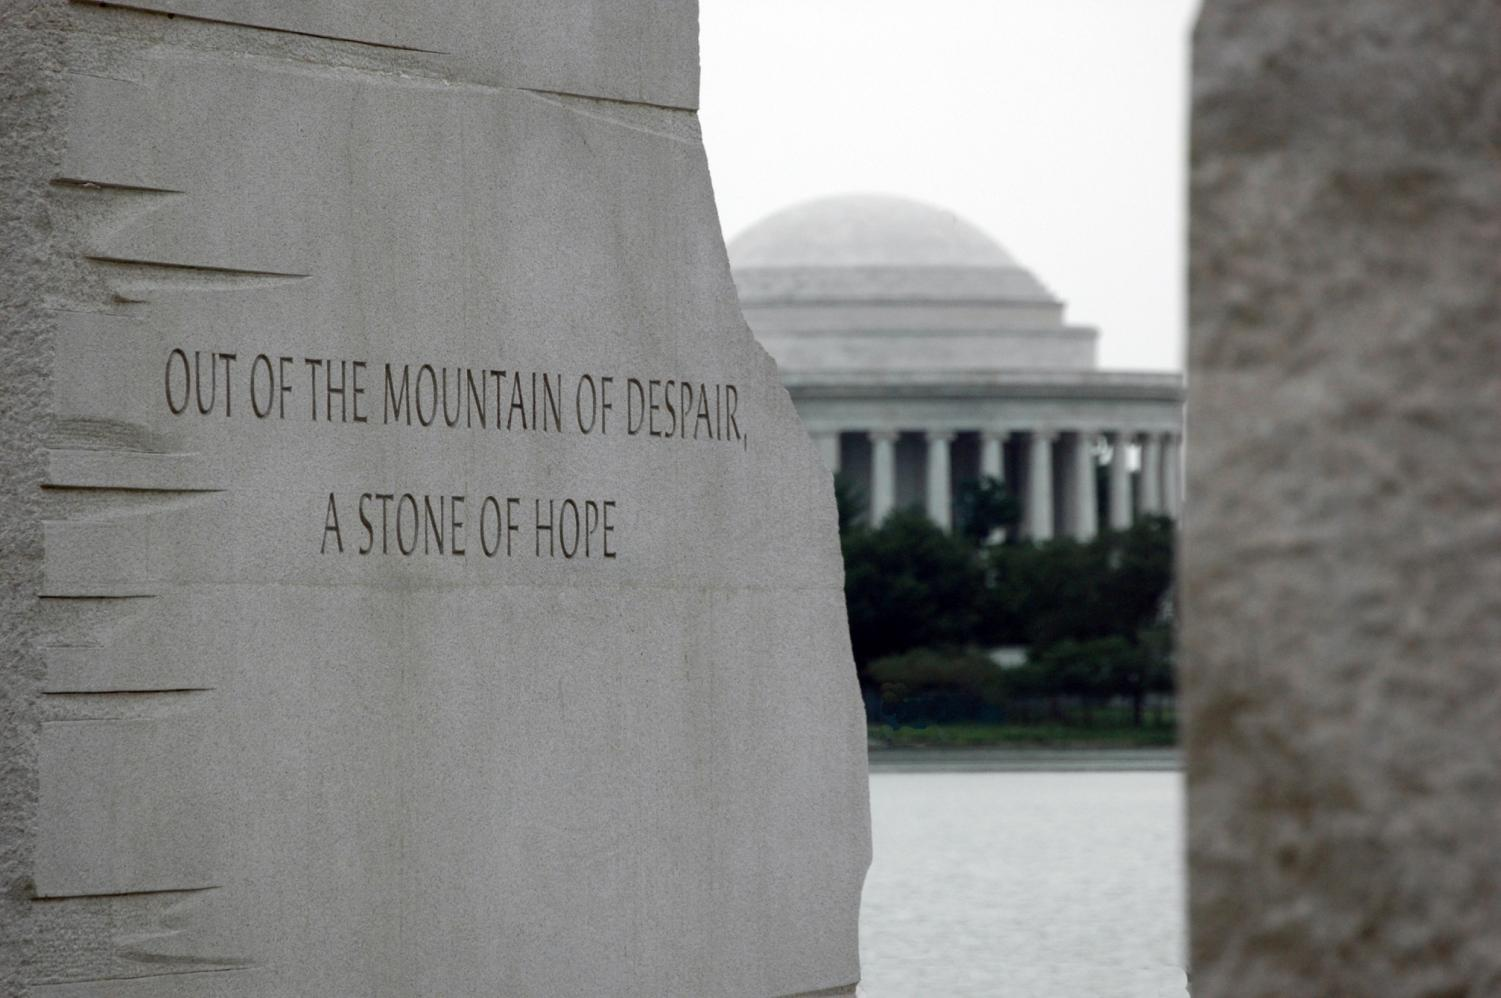 The the Martin Luther King, Jr. memorial in Washington, D.C.